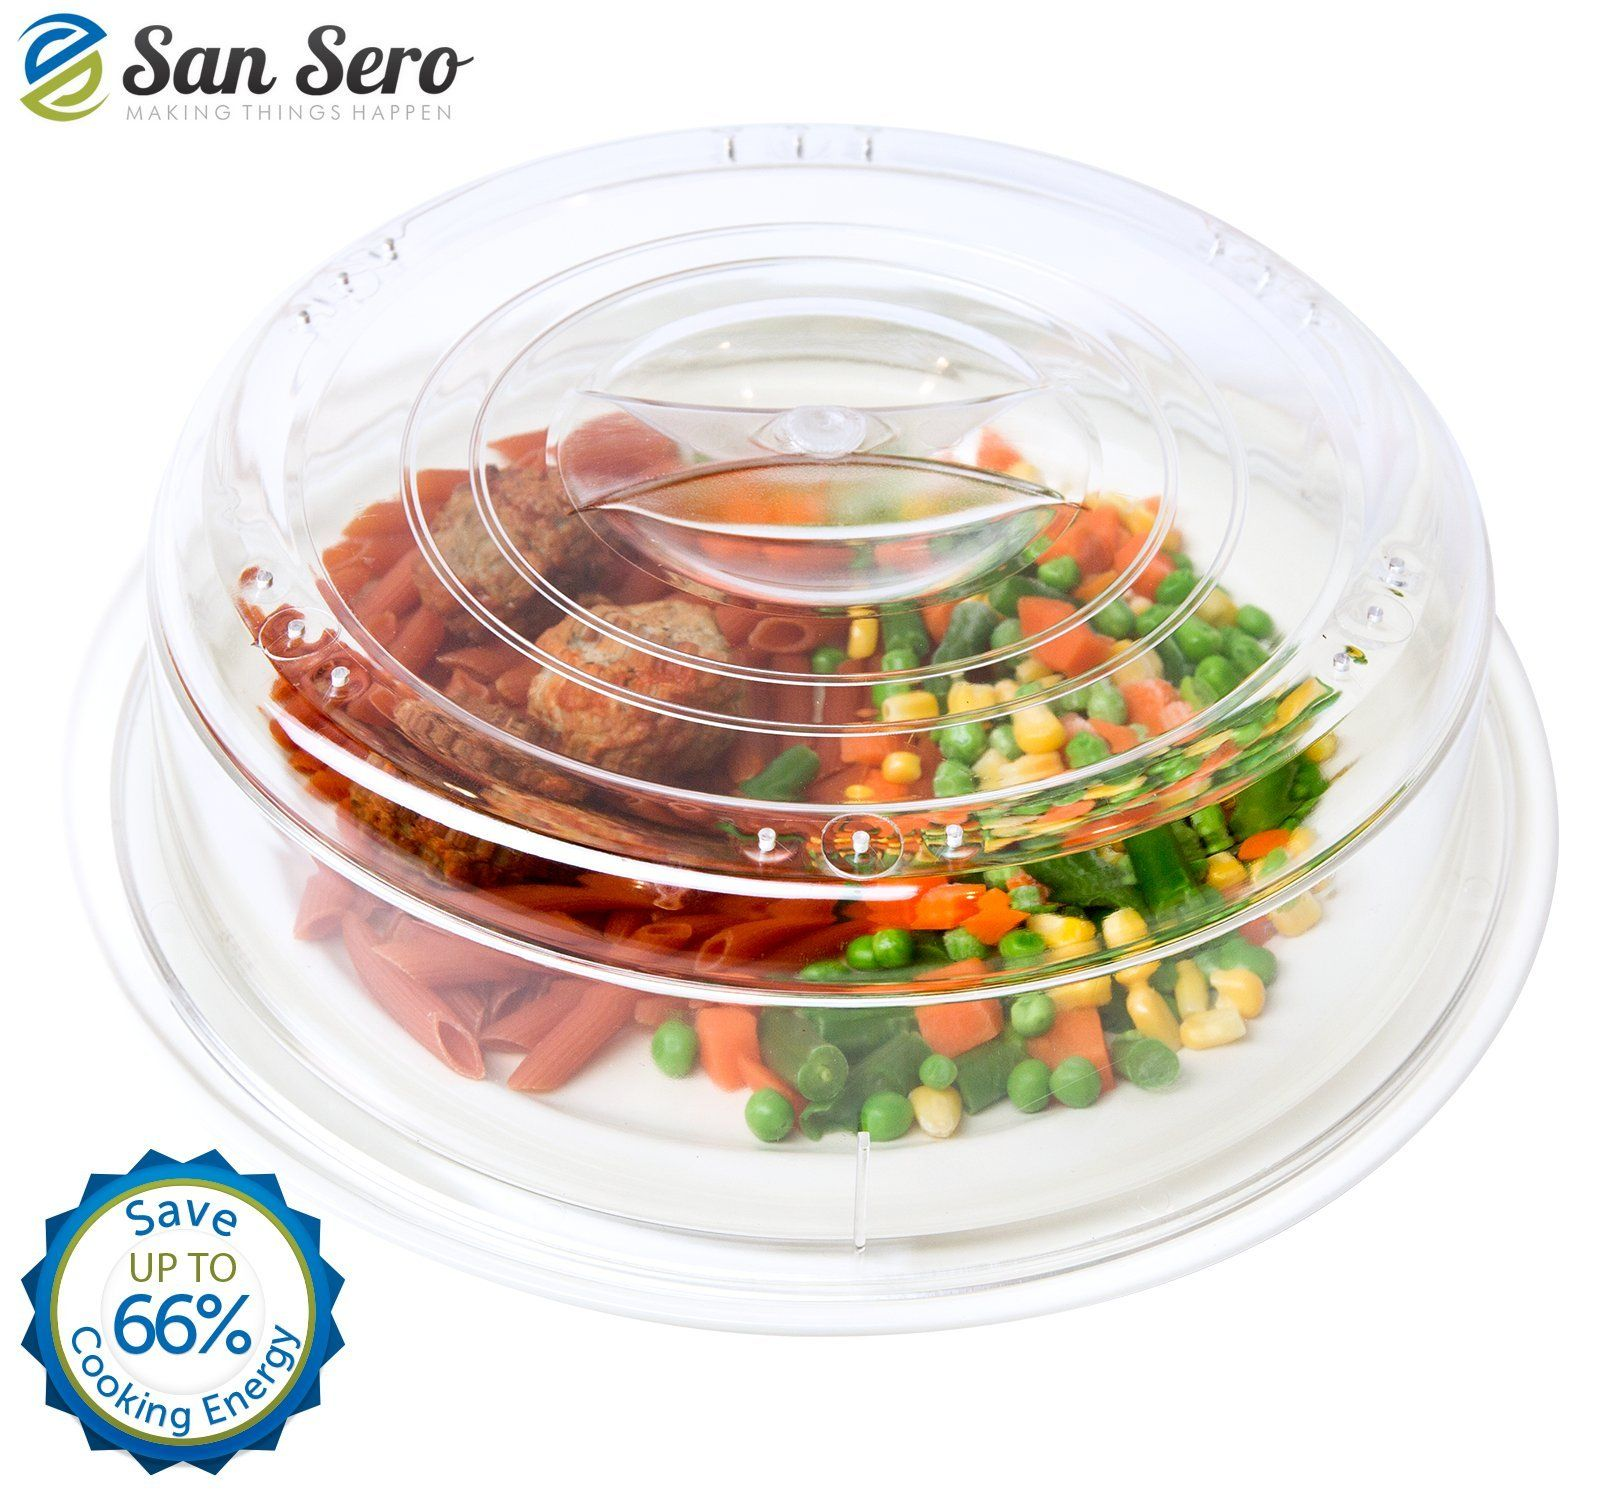 Best Microwave Cover Saves 66 Energy Perfect Splatter Guard Cooks Your Food Quicker Cookware Lids Kitchen Dining